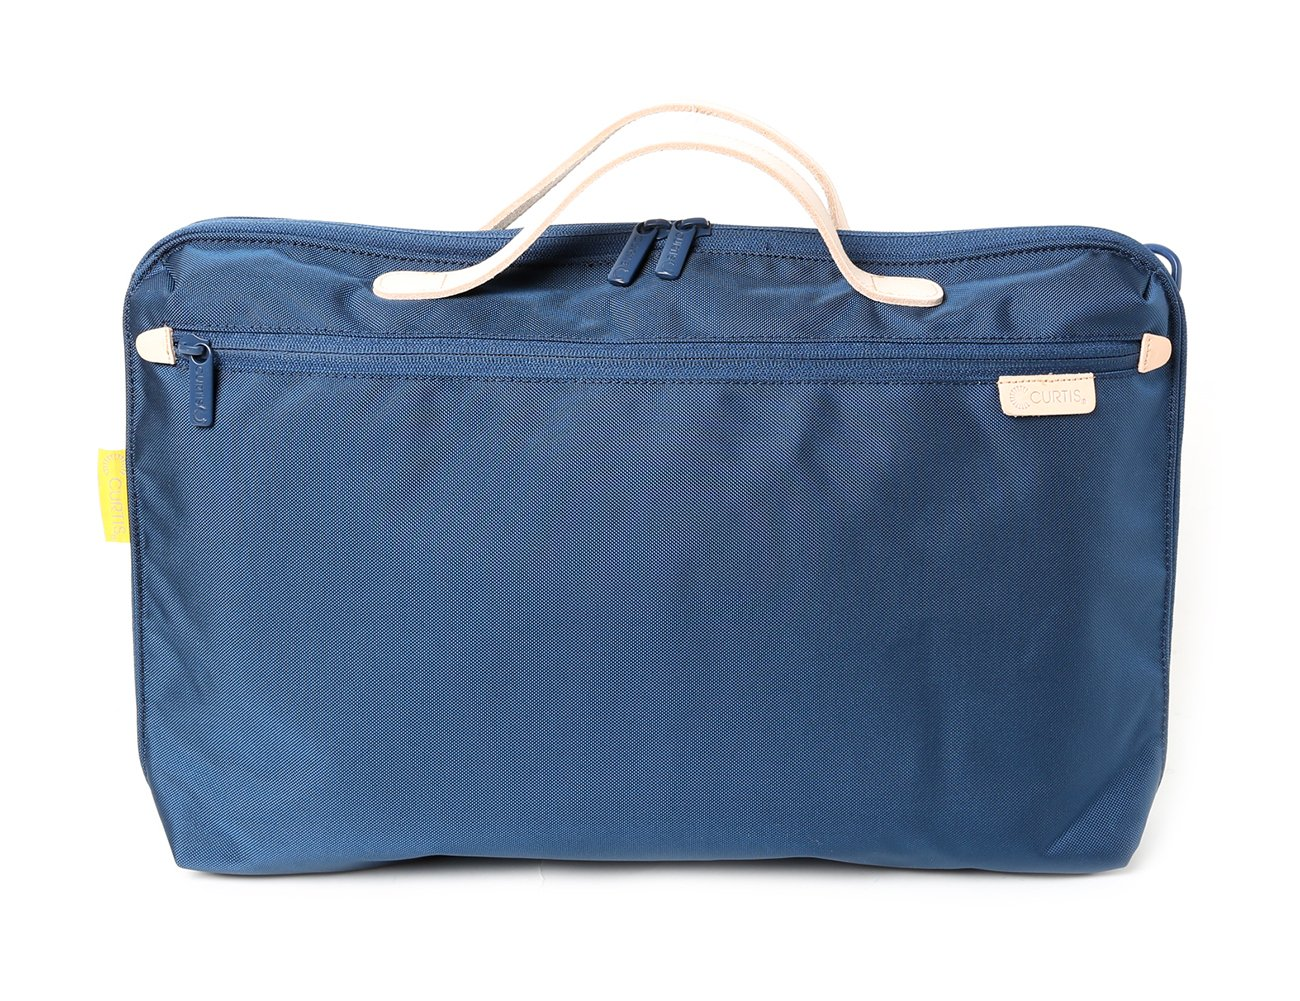 Curtis Bags Flute Slim Bags One Size Navy